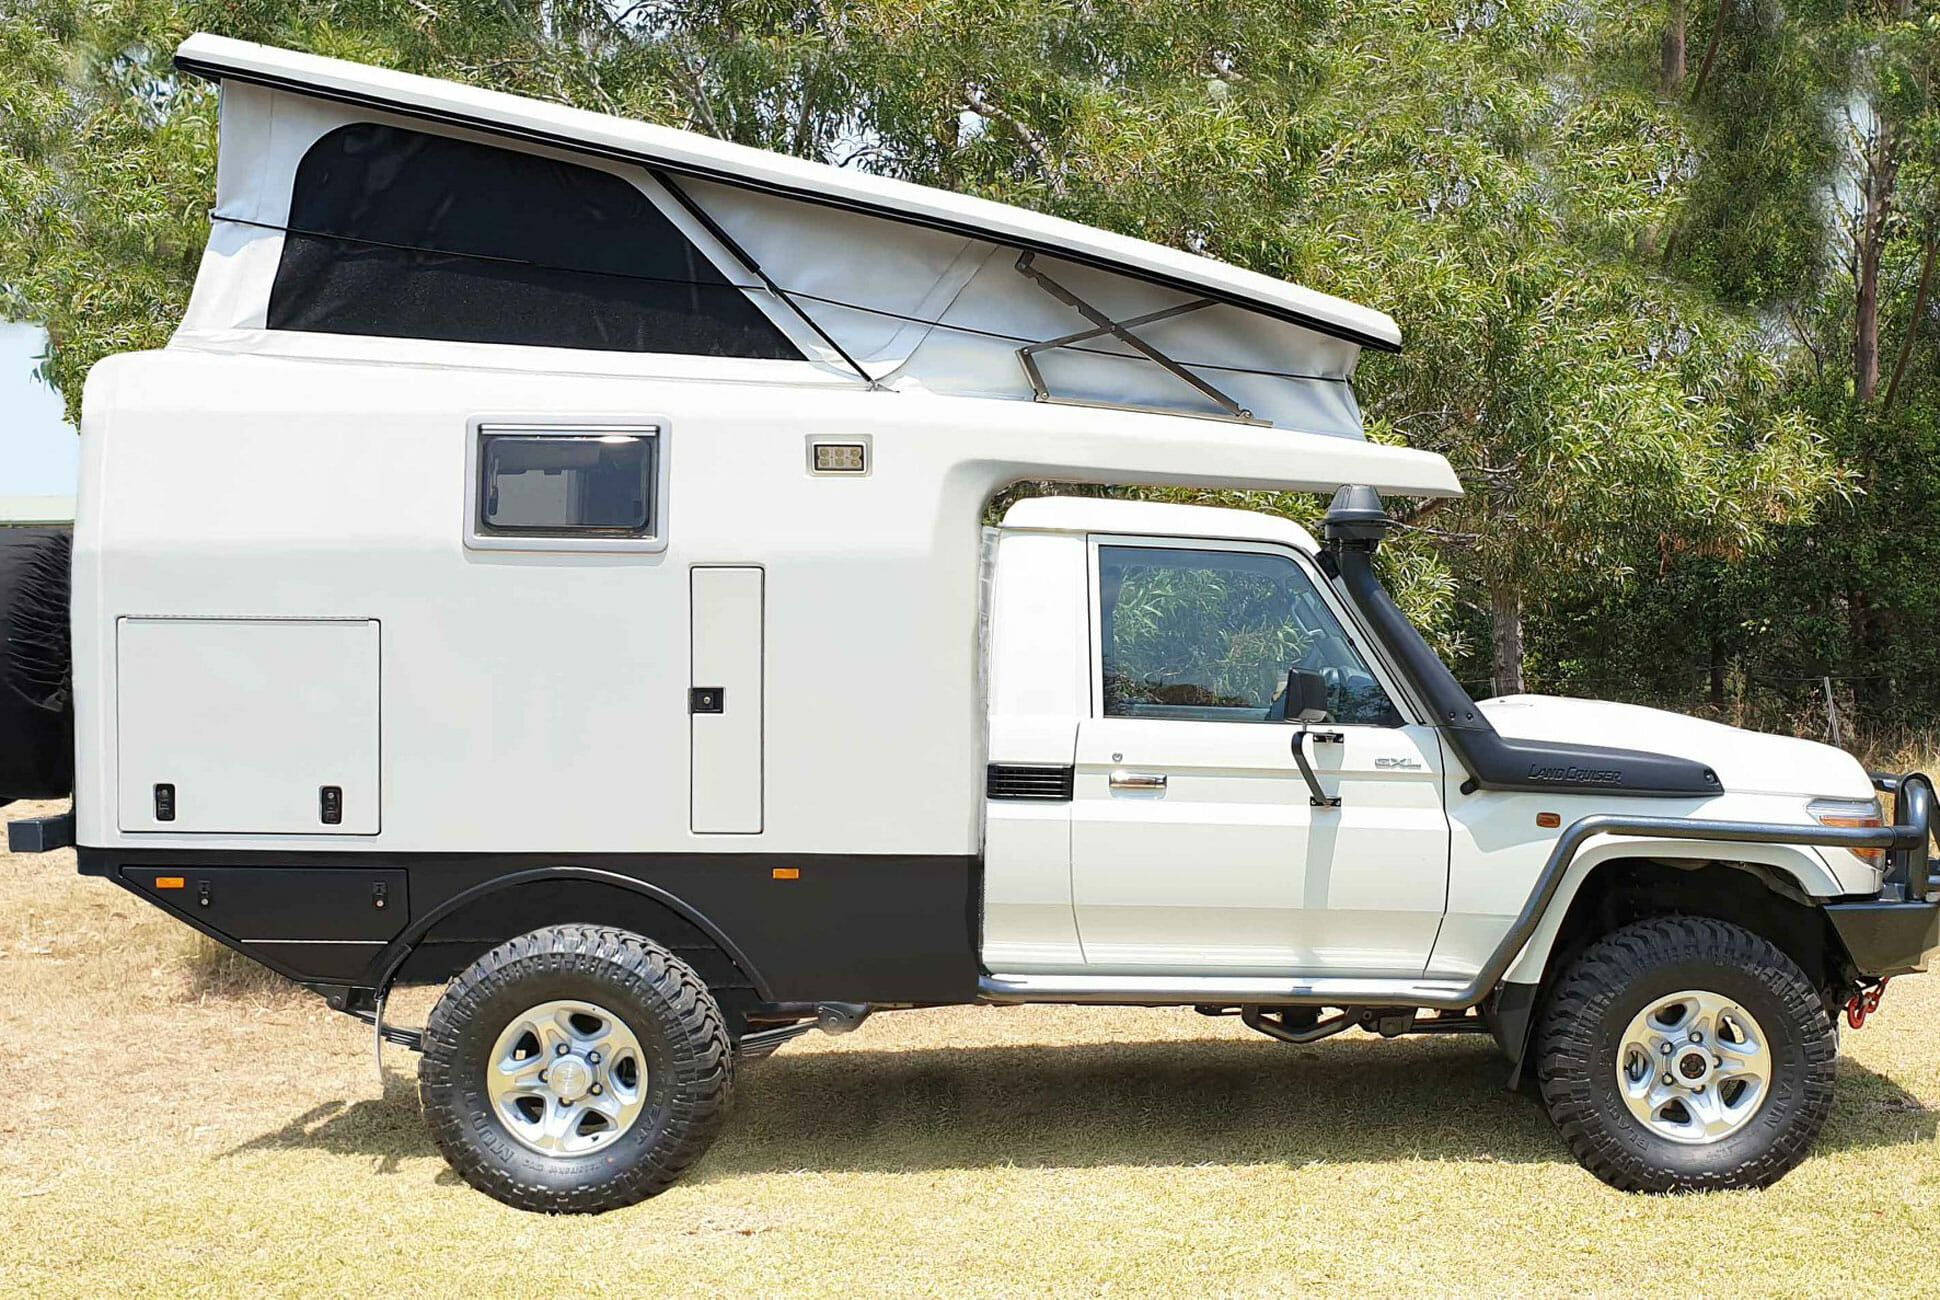 Meet the Perfect Toyota Land Cruiser Off-Road Camper • Gear